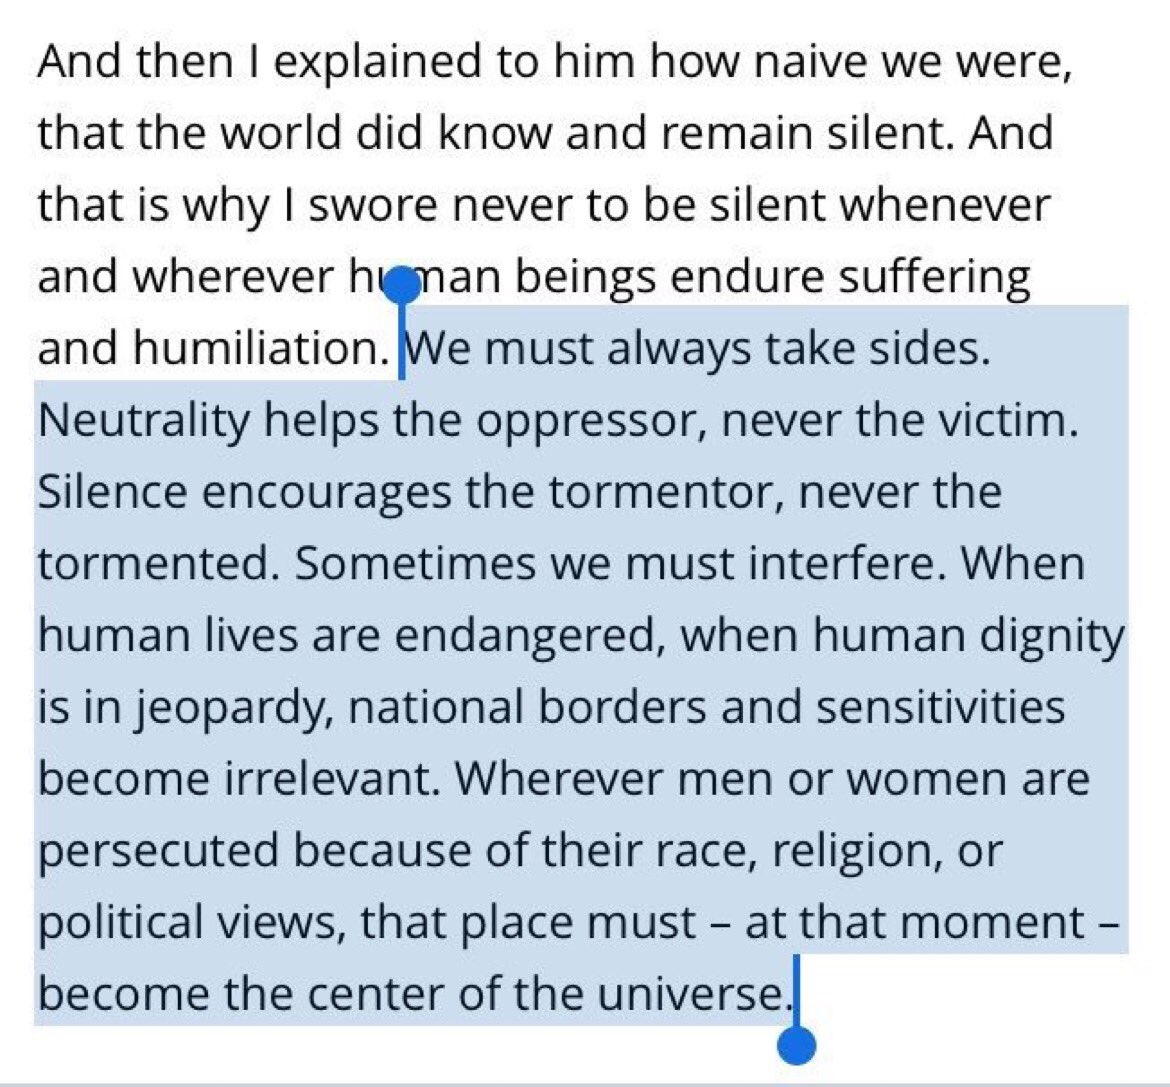 an analysis of elie wiesels nobel peace prize acceptance speech Holocaust survivor and nobel laureate, elie wiesel  including the 1986 nobel peace prize and the session that followed his speech).